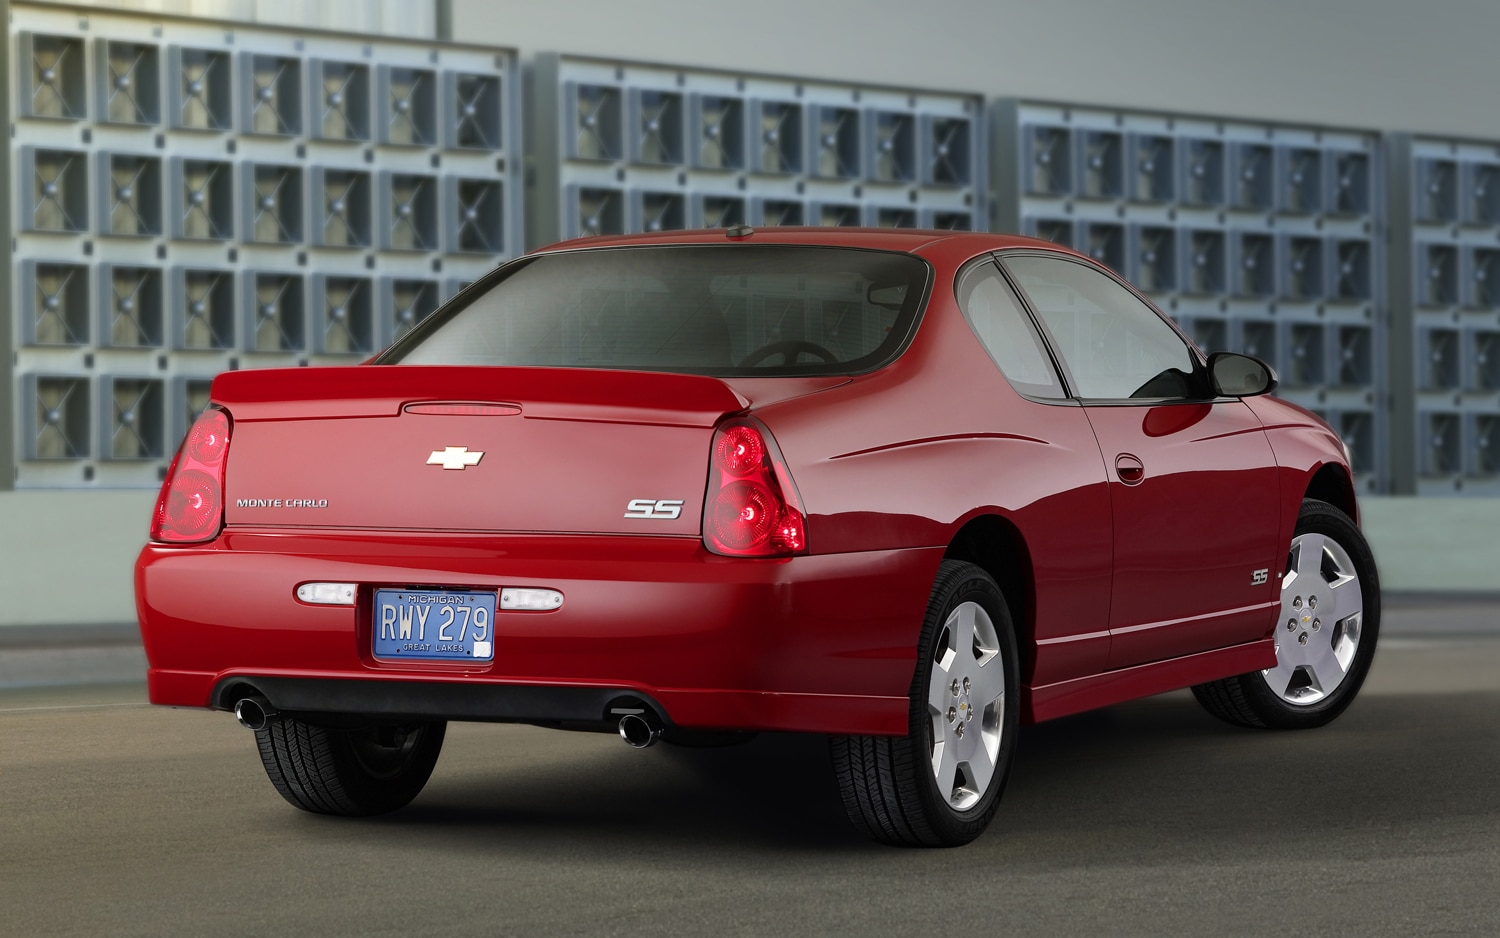 GM Recalls 3.16 Million More Cars for Key Issues ...